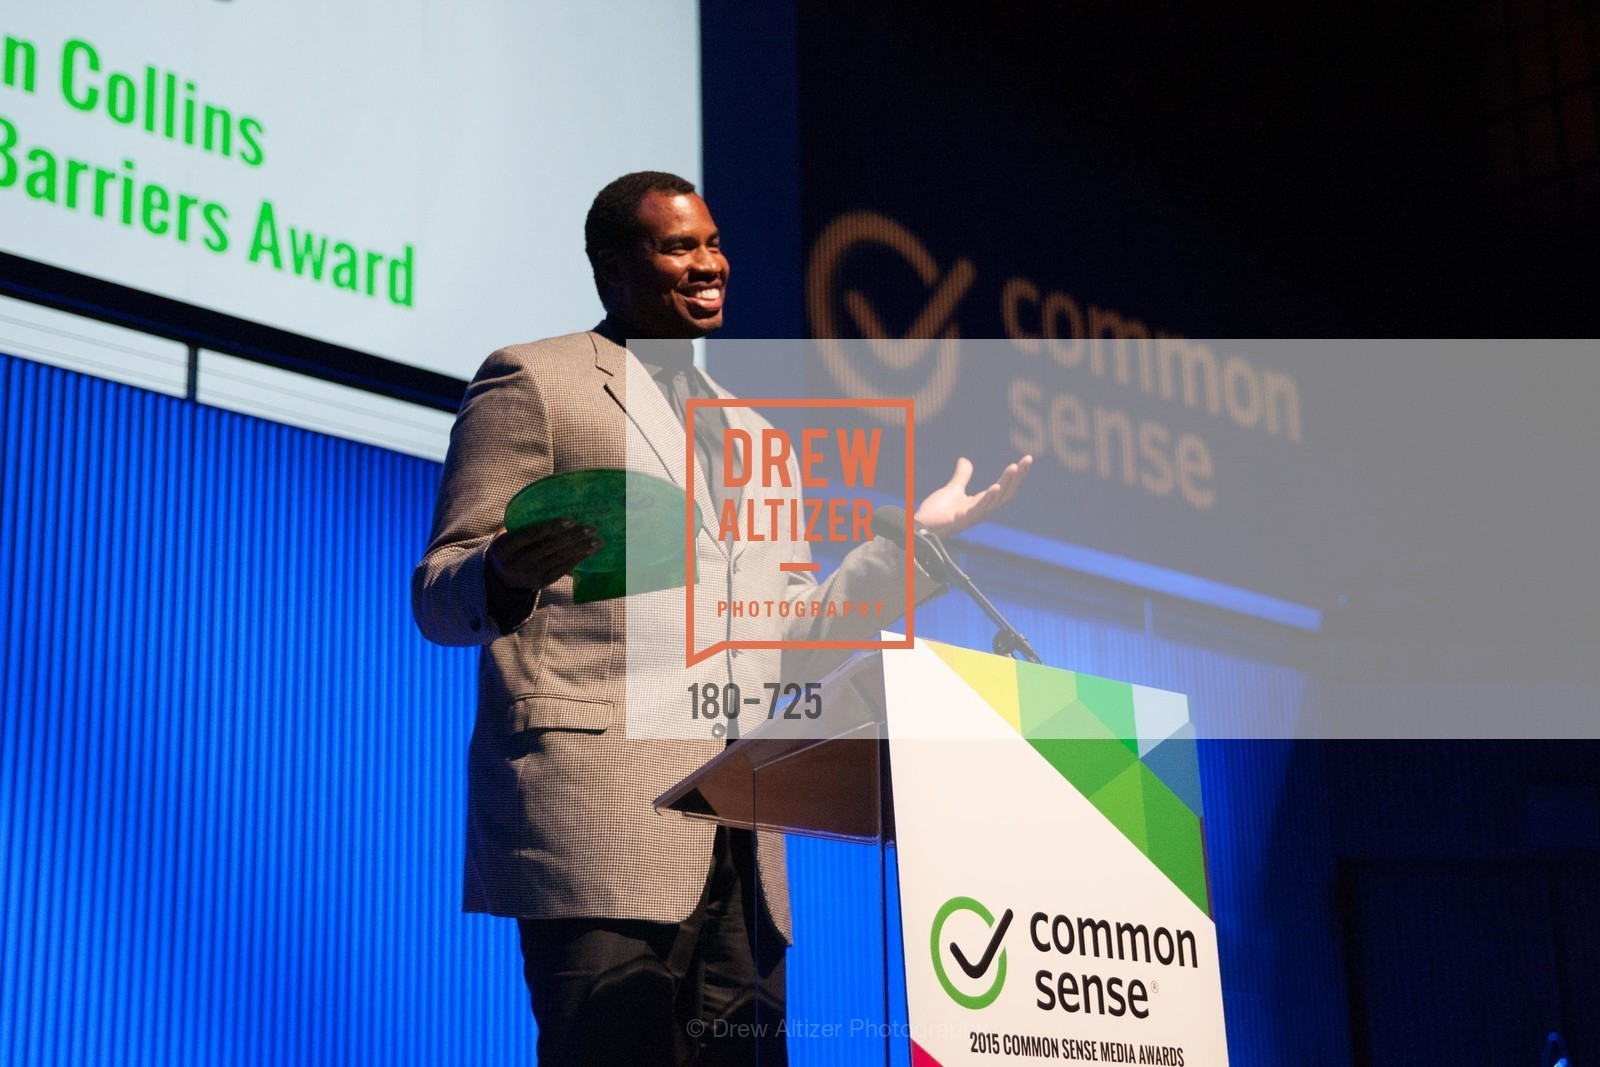 Jason Collins, COMMON SENSE Media Awards 2015, US, May 13th, 2015,Drew Altizer, Drew Altizer Photography, full-service agency, private events, San Francisco photographer, photographer california